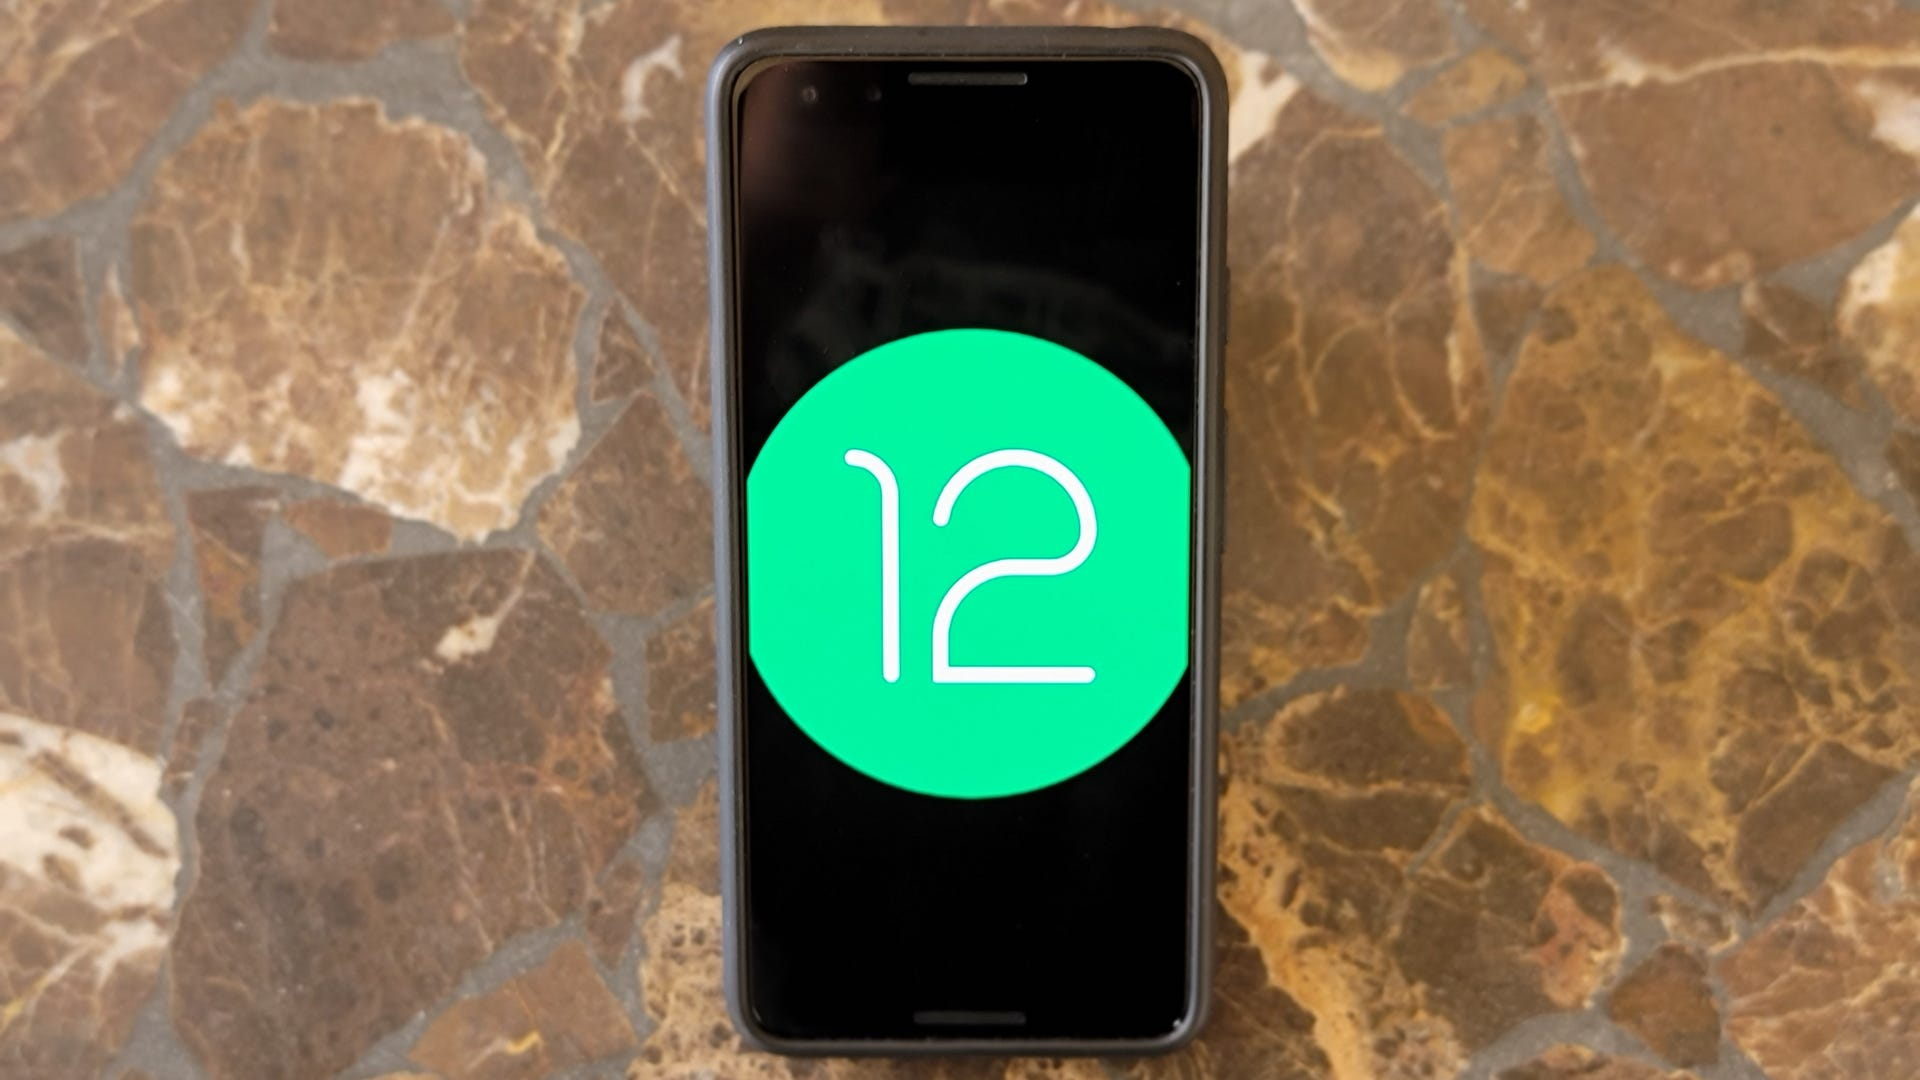 Android 12 beta on the Pixel 3